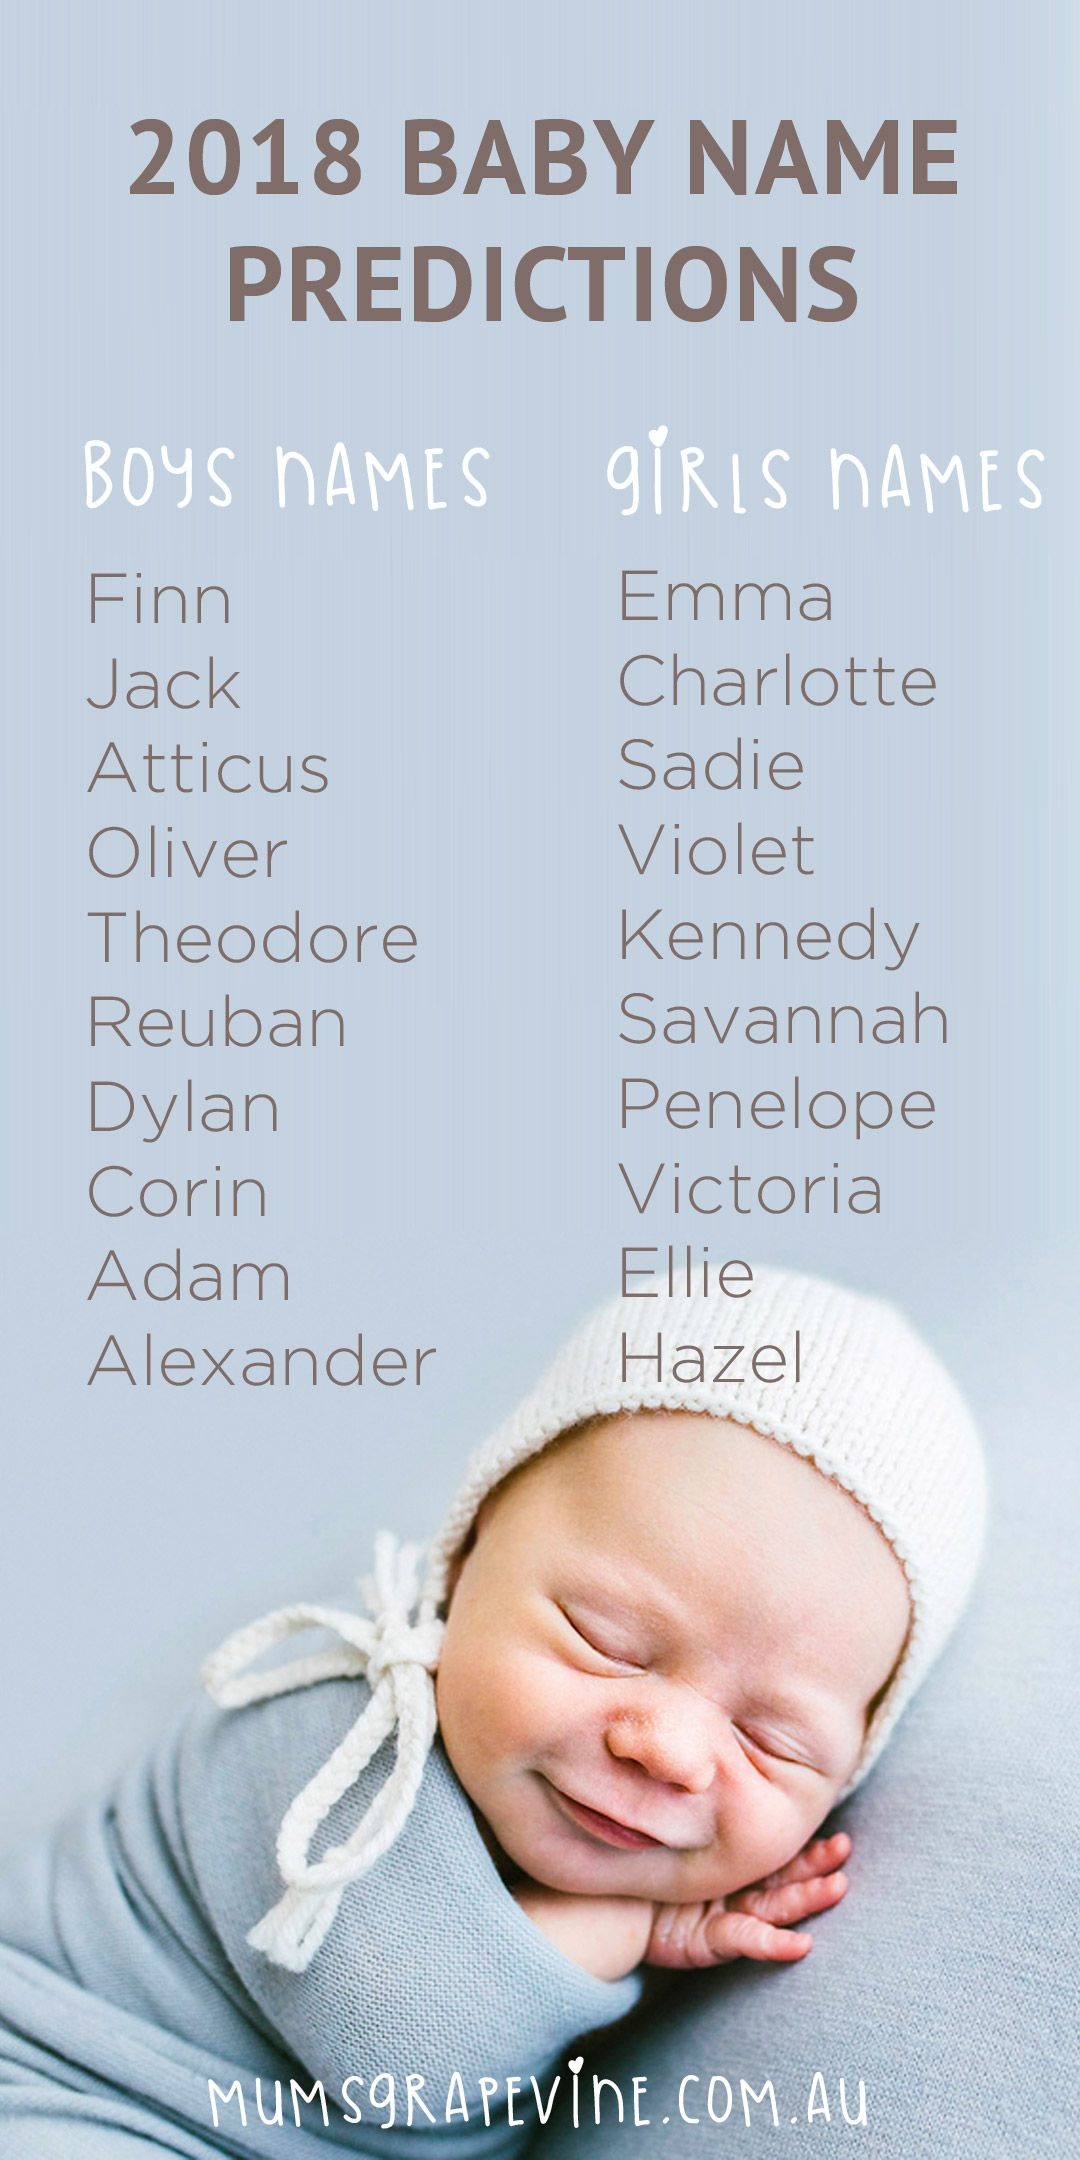 Prediction The most popular baby names for 2018 Mum's